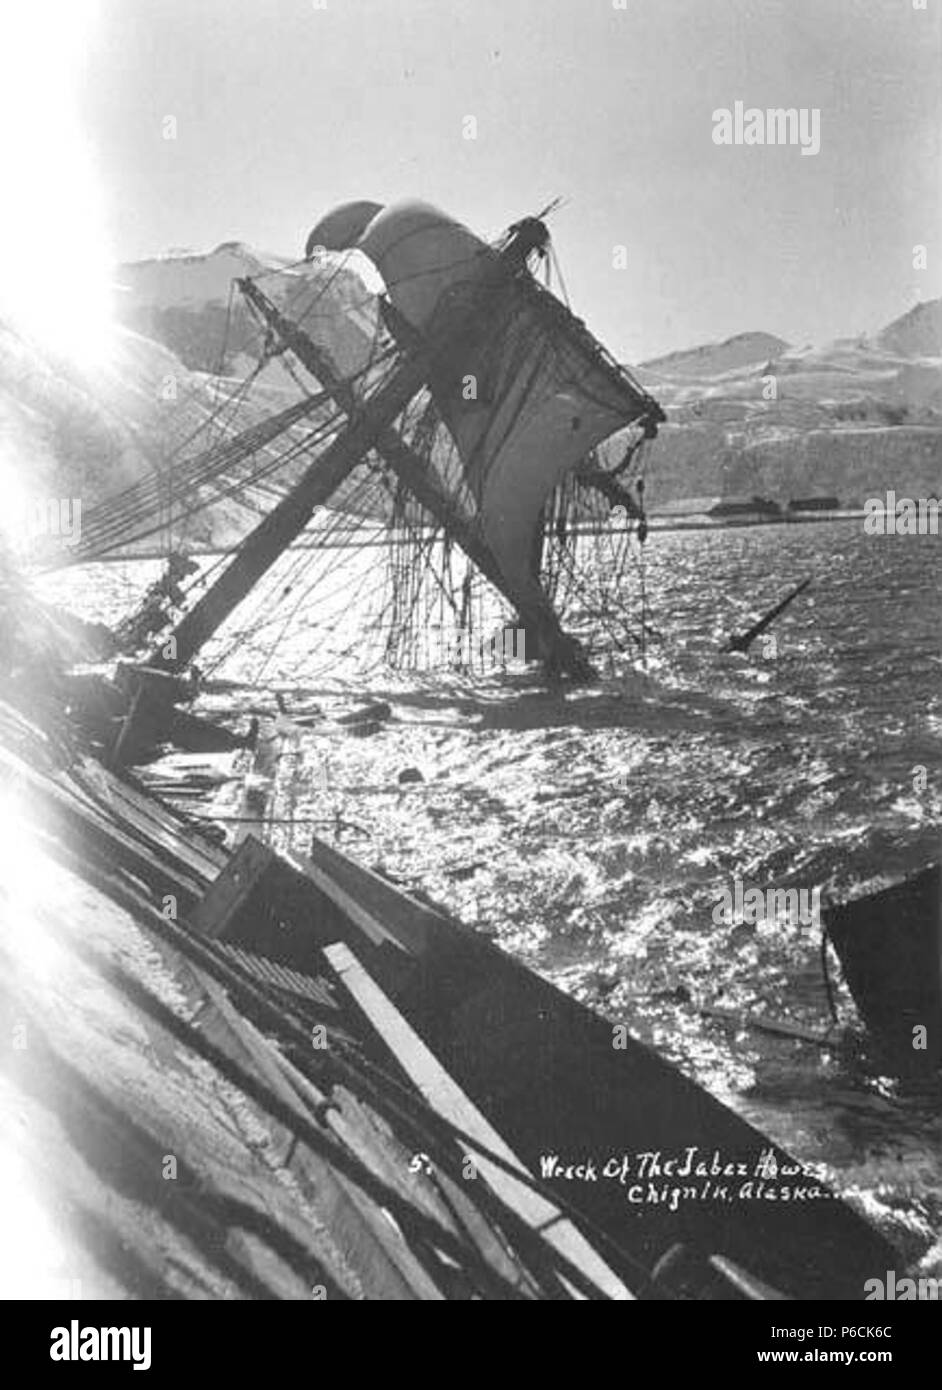 English: Wreck of the salmon cannery ship JABEZ HOWES